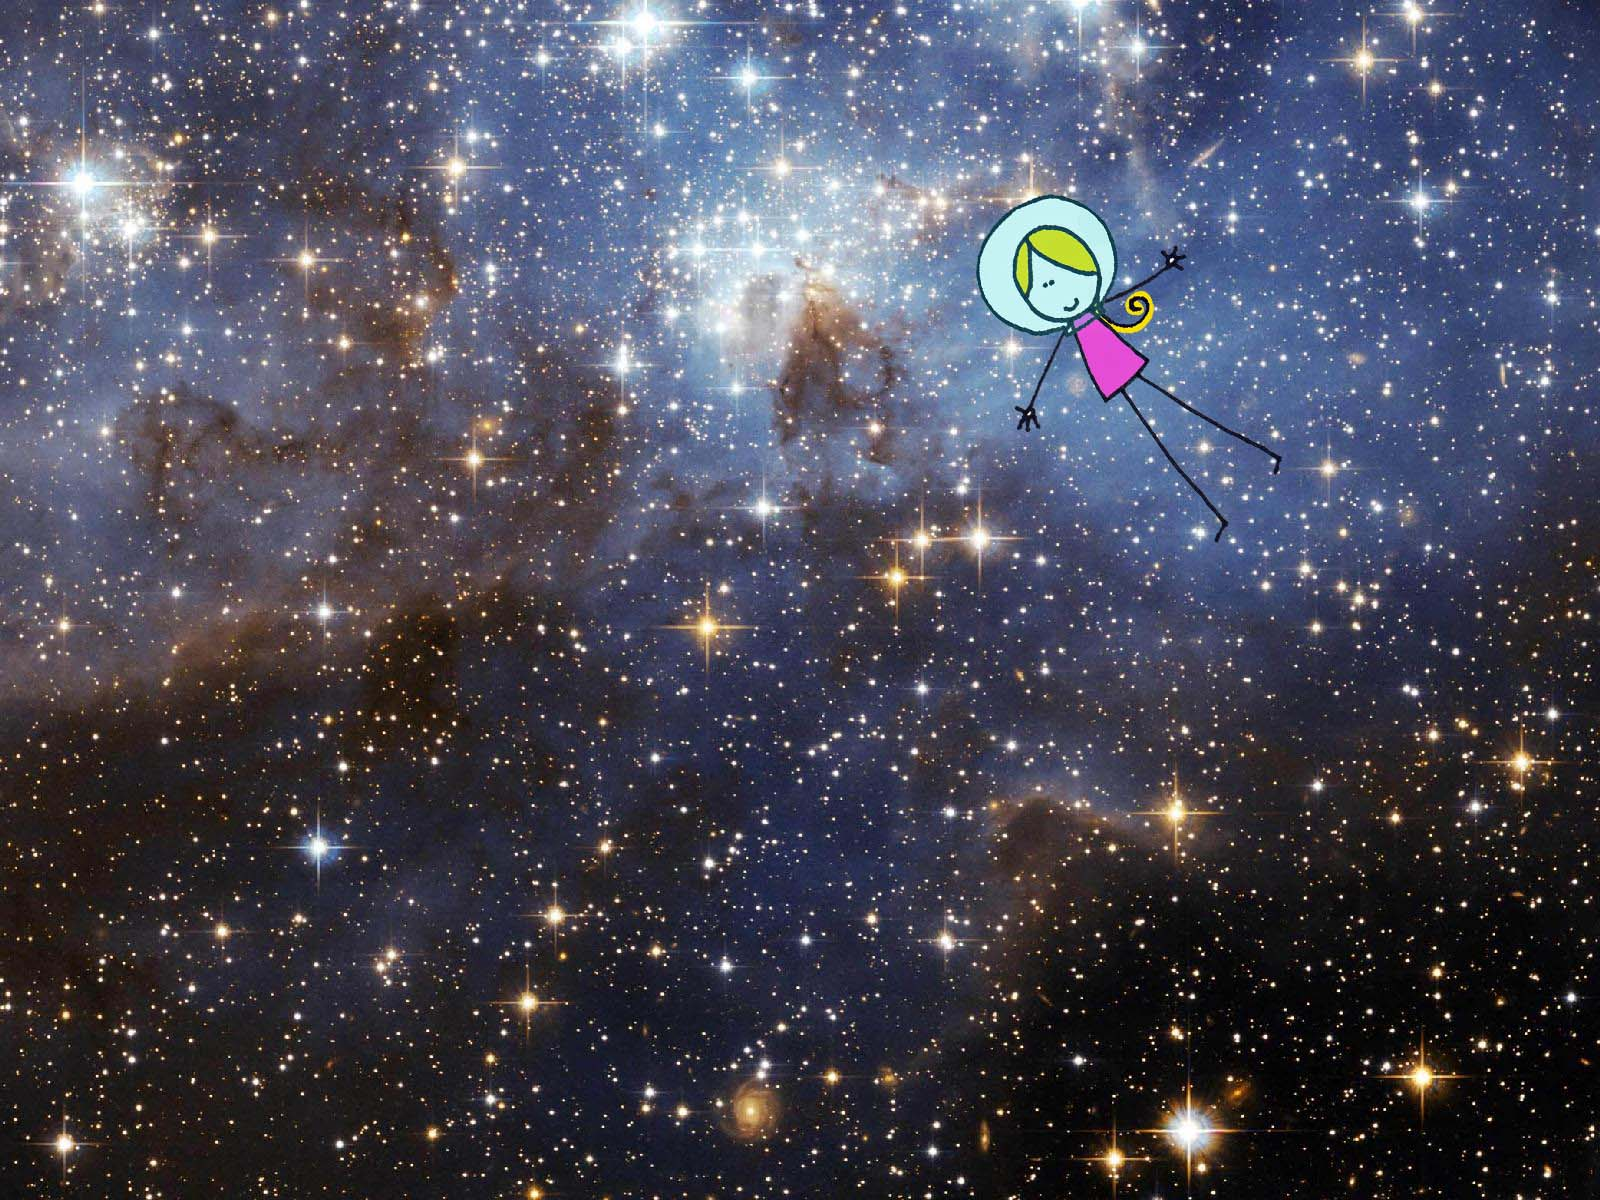 outer space seems like real cool relaxing cocoa likes this